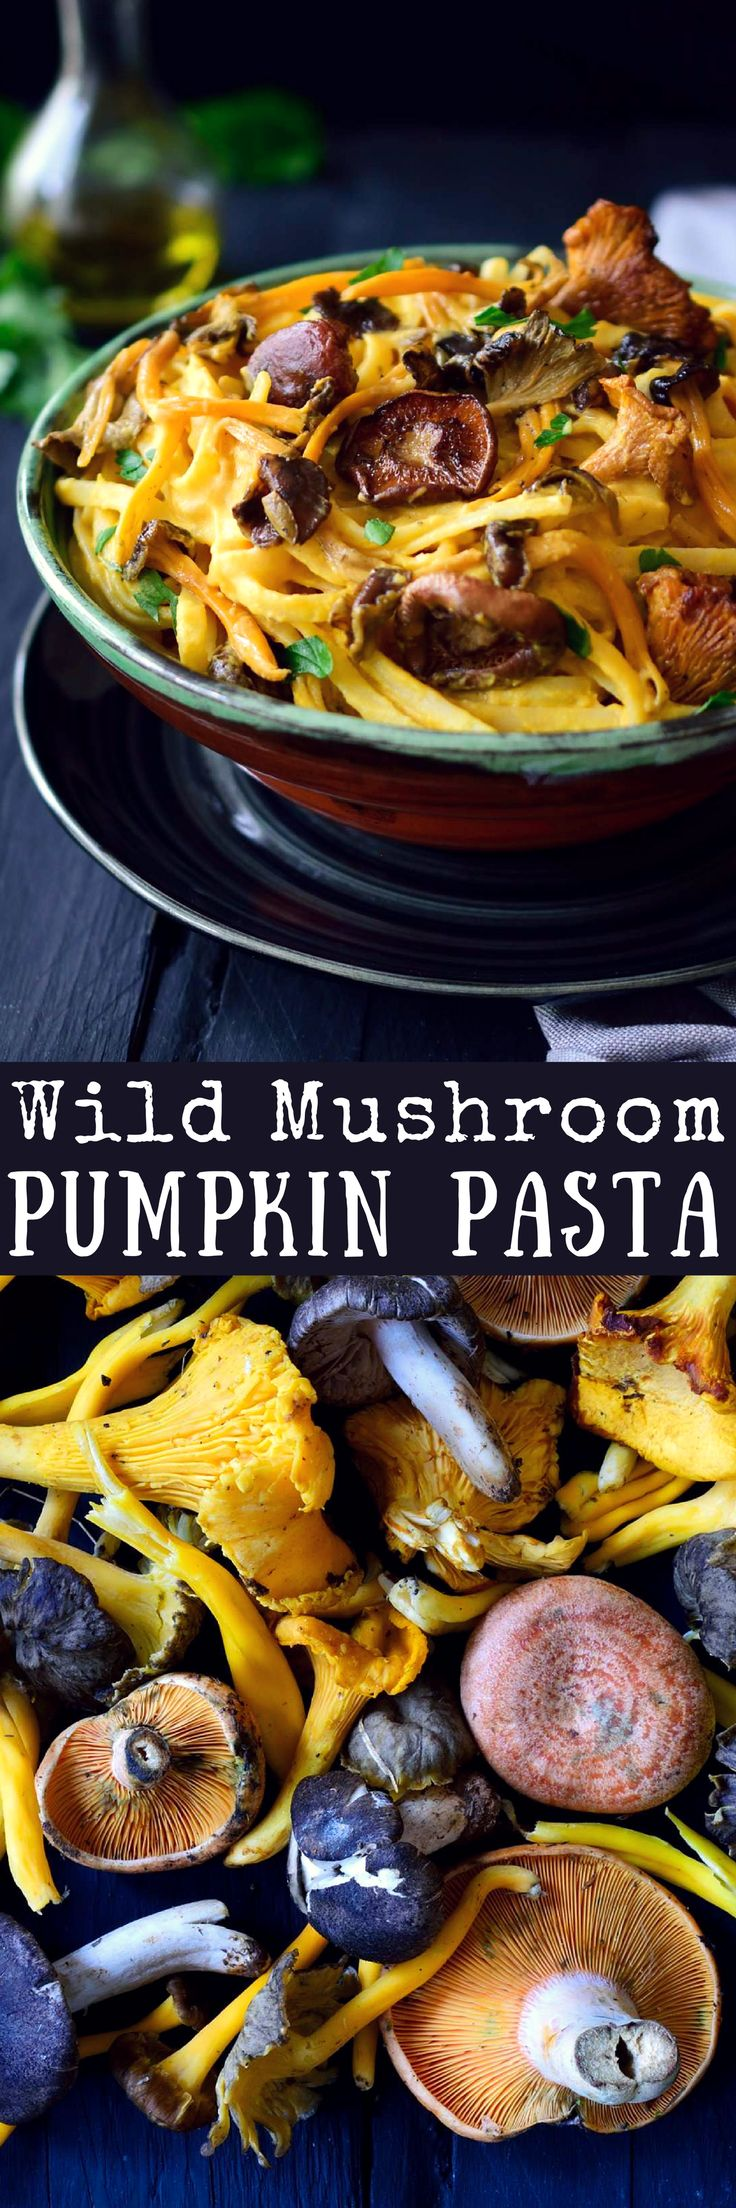 Vegan pumpkin pasta sauce with wild mushrooms is an easy and healthy recipe filled with the flavours of autumn. An easy 4-ingredient pumpkin sauce tossed with pasta and topped with sautéed mushrooms, garlic and herbs will give you a filling and delicious 30-minute dinner for a chilly fall evening.